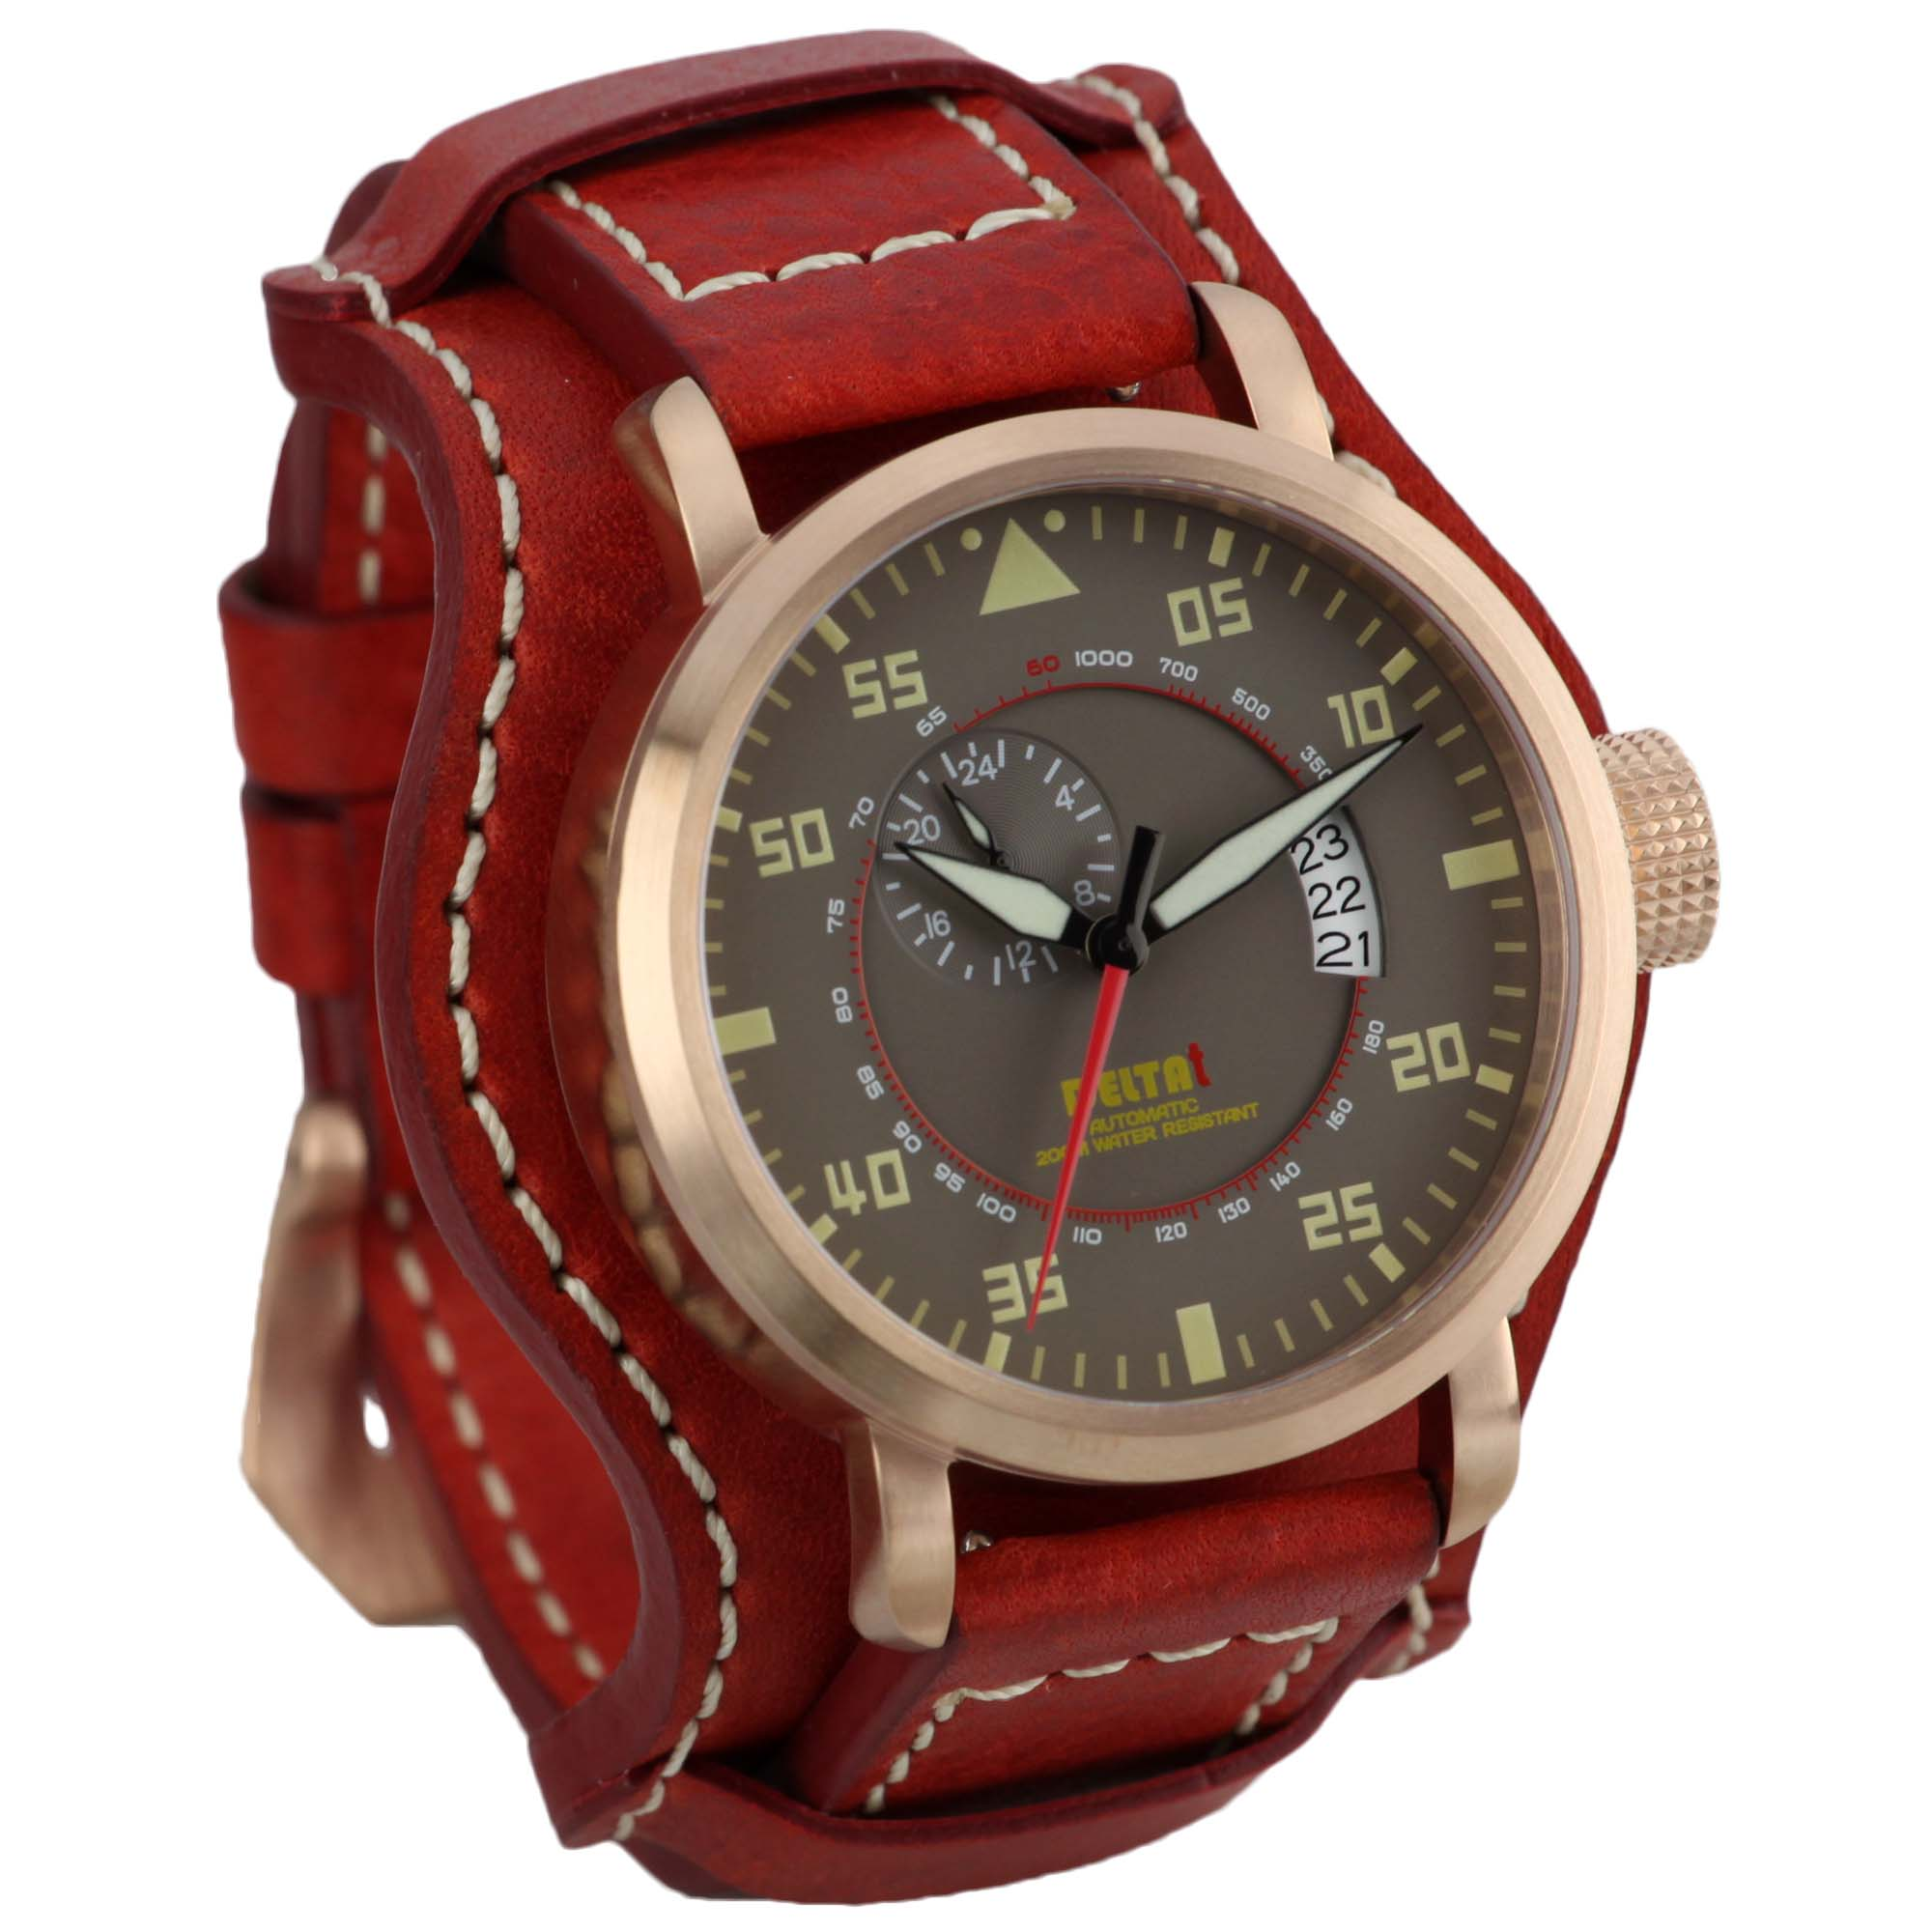 armor invicta watches youtube largest watch models made